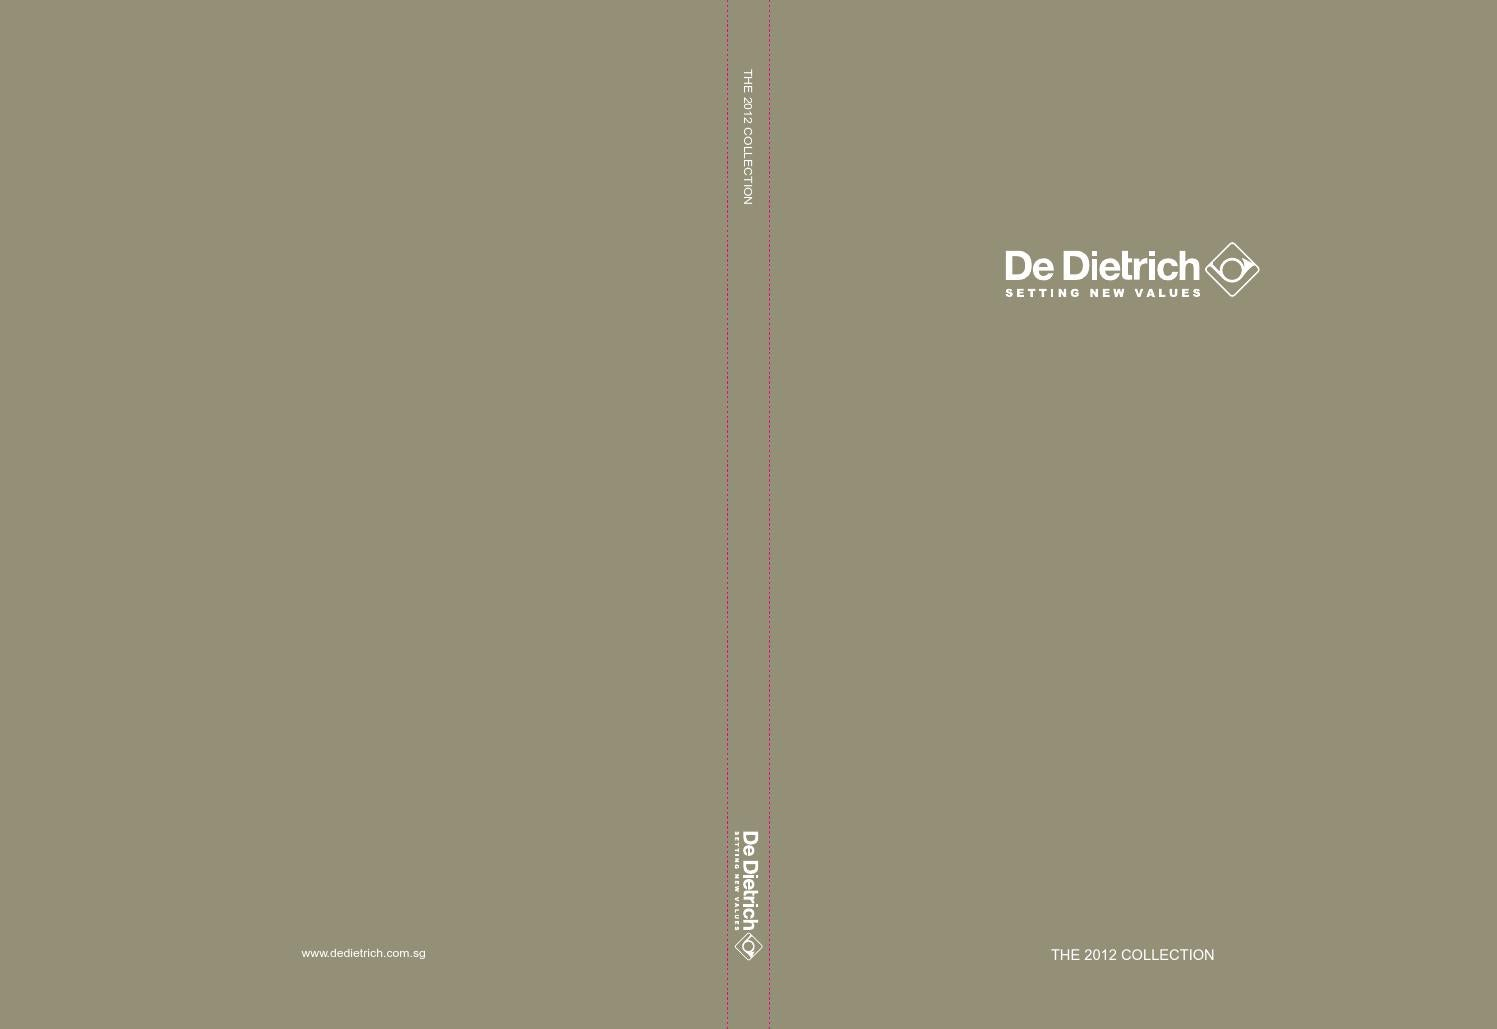 de dietrich catalogue 2012 full set by dinhlu issuu. Black Bedroom Furniture Sets. Home Design Ideas